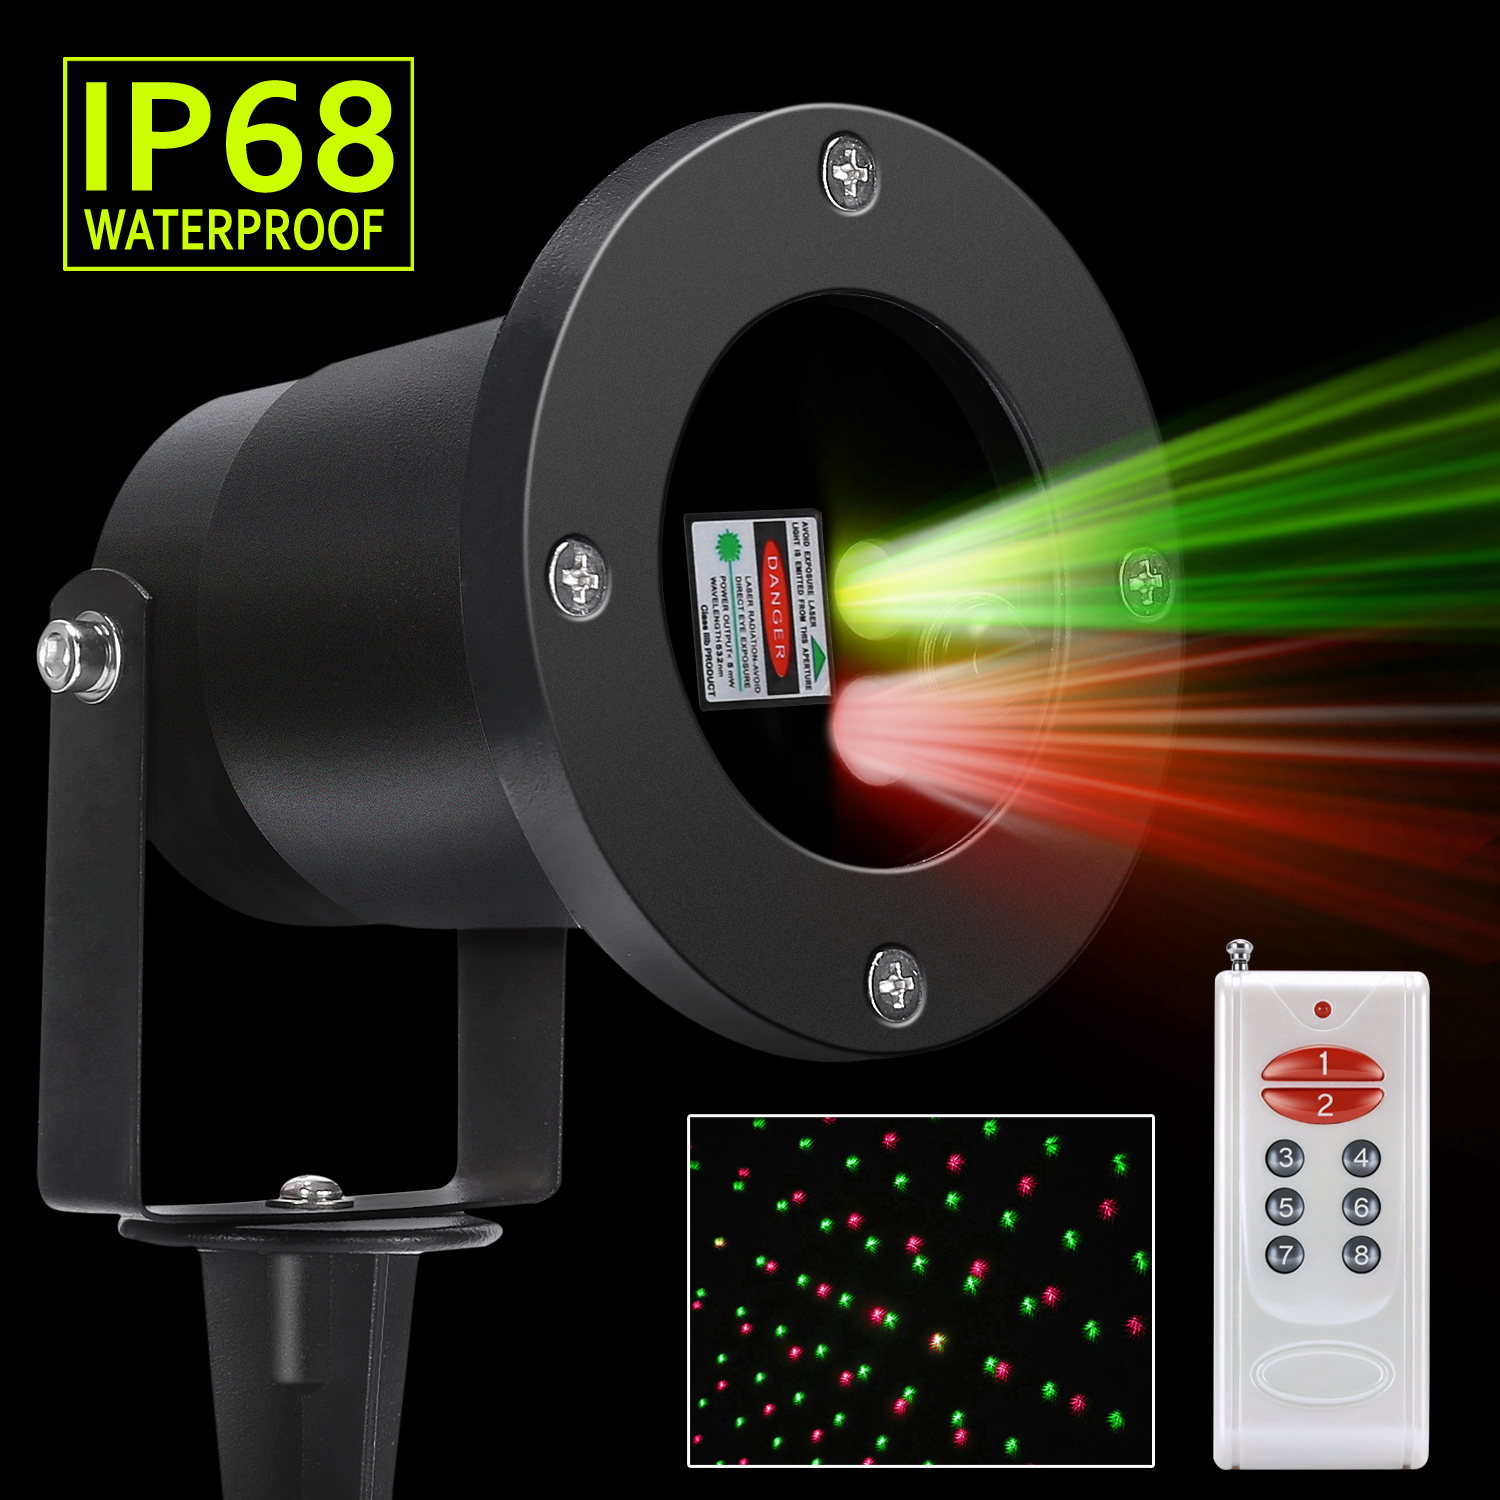 magicfly outdoor christmas laser lights red and green landscape star projector decorative lights party decoration ip68 walmartcom - Laser Projector Christmas Lights